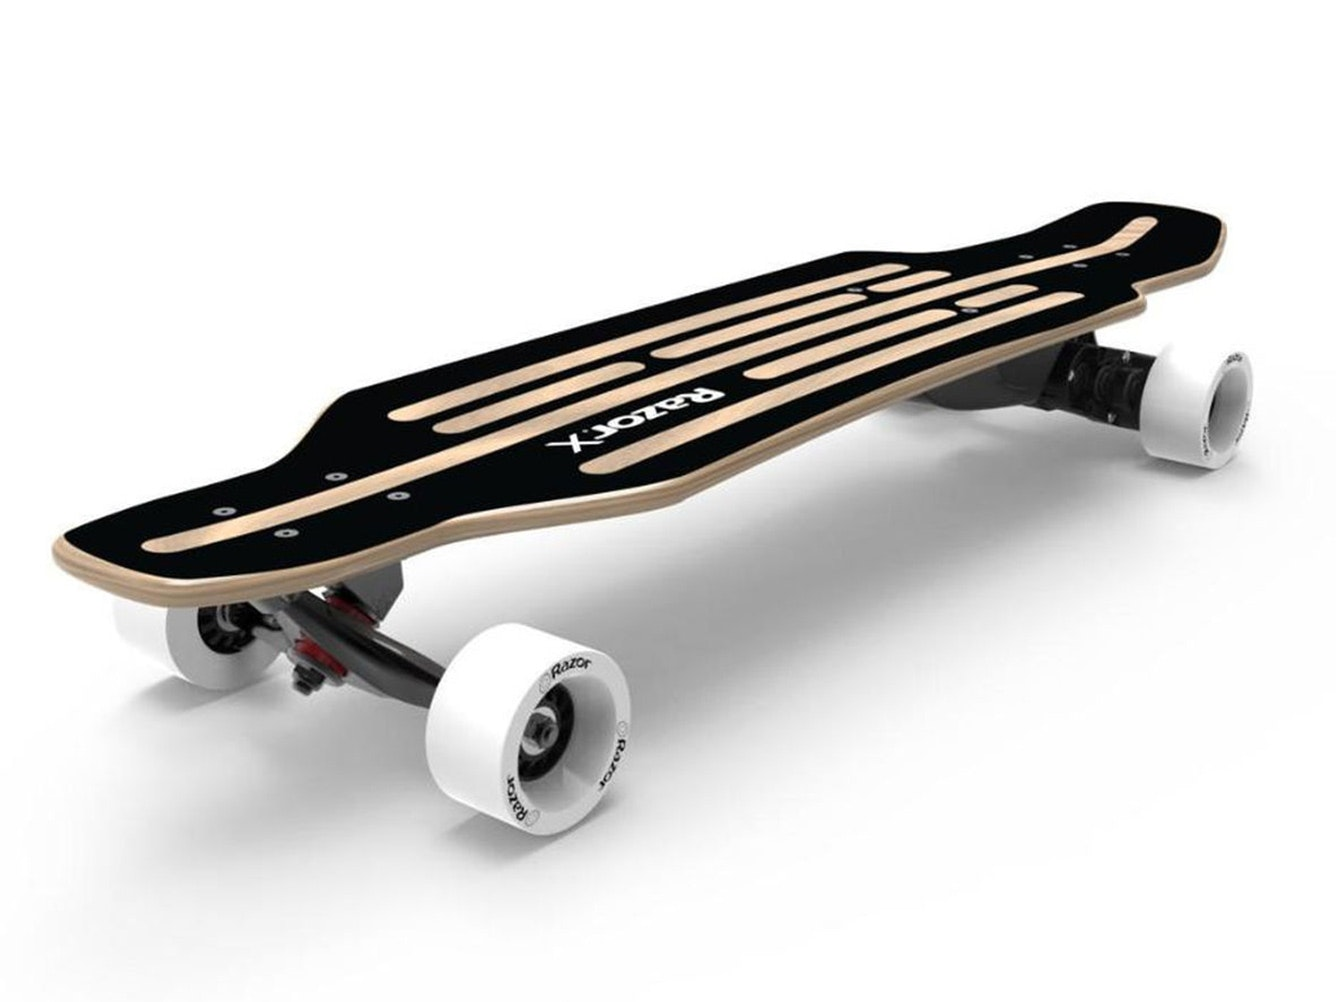 fe90dde0b1da RazorX Longboard Electric Skateboard - Skateboards & Hoverboards - Bikes &  Trikes - Sports & Outdoors - Home & Outdoor Living at Trade Tested